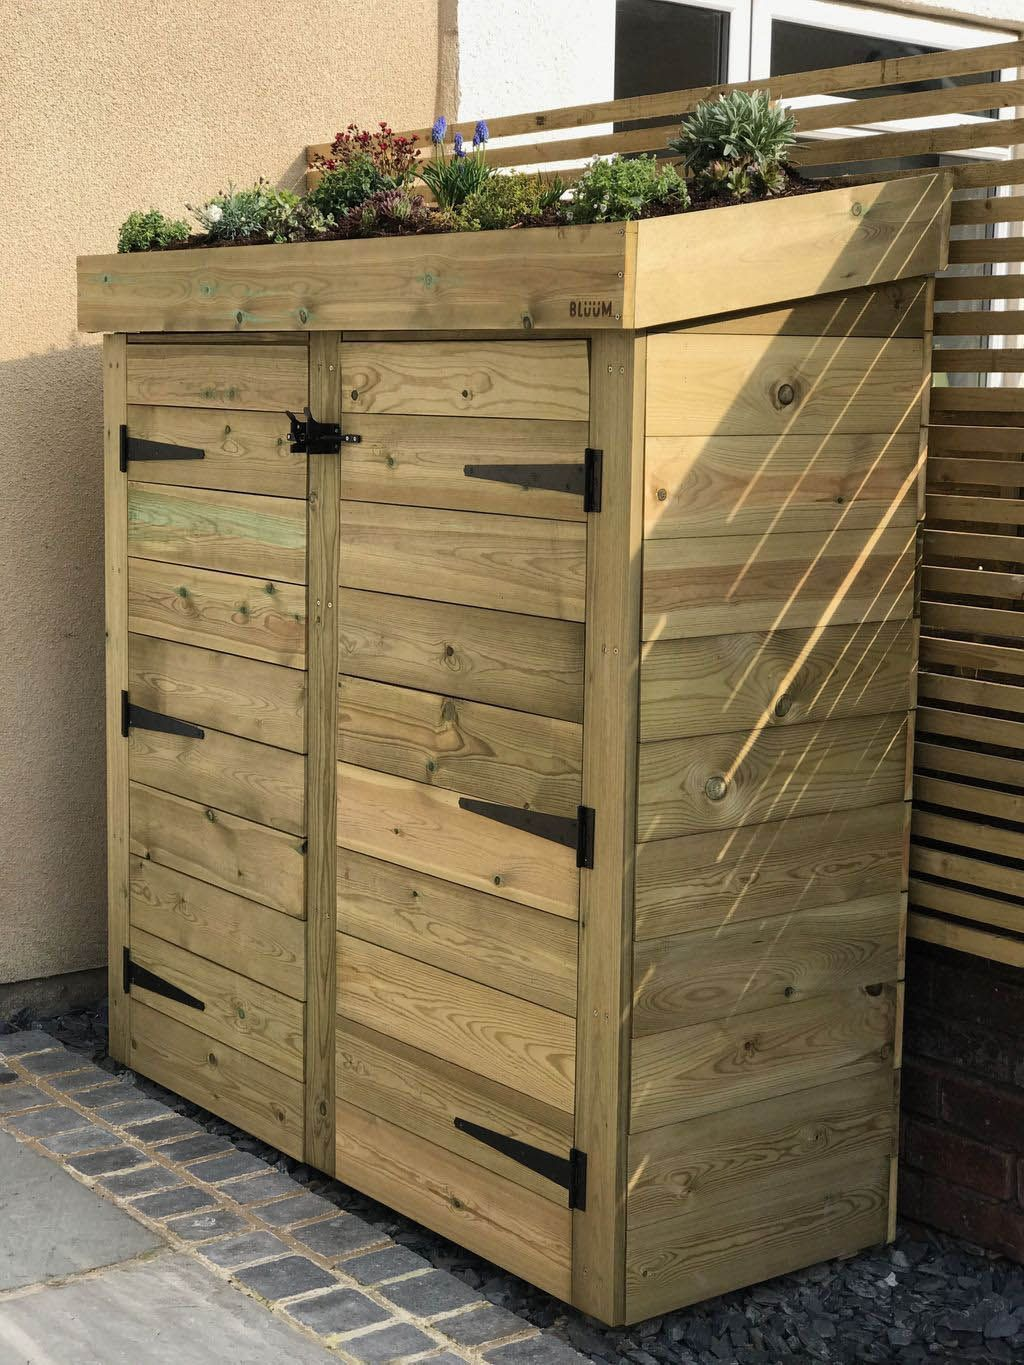 Artistic Patio Area Storage Space Ideas Garden Shed Diy Small